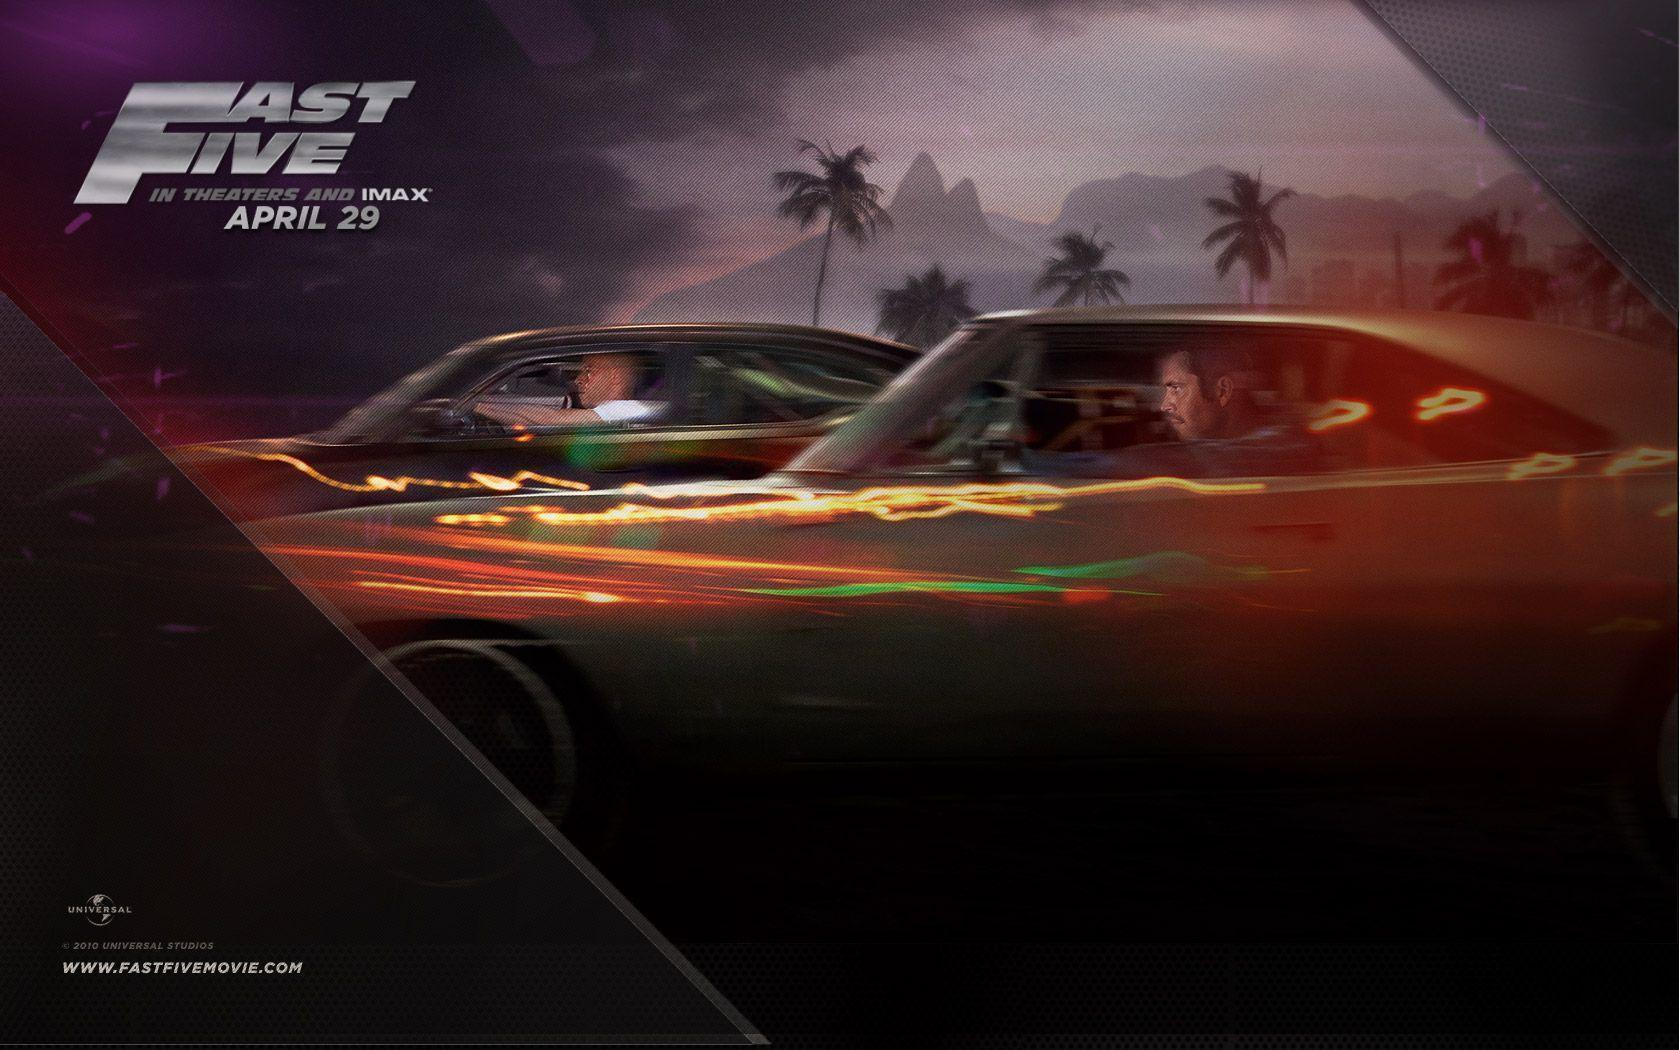 Fast Five Wallpapers - Wallpaper Cave